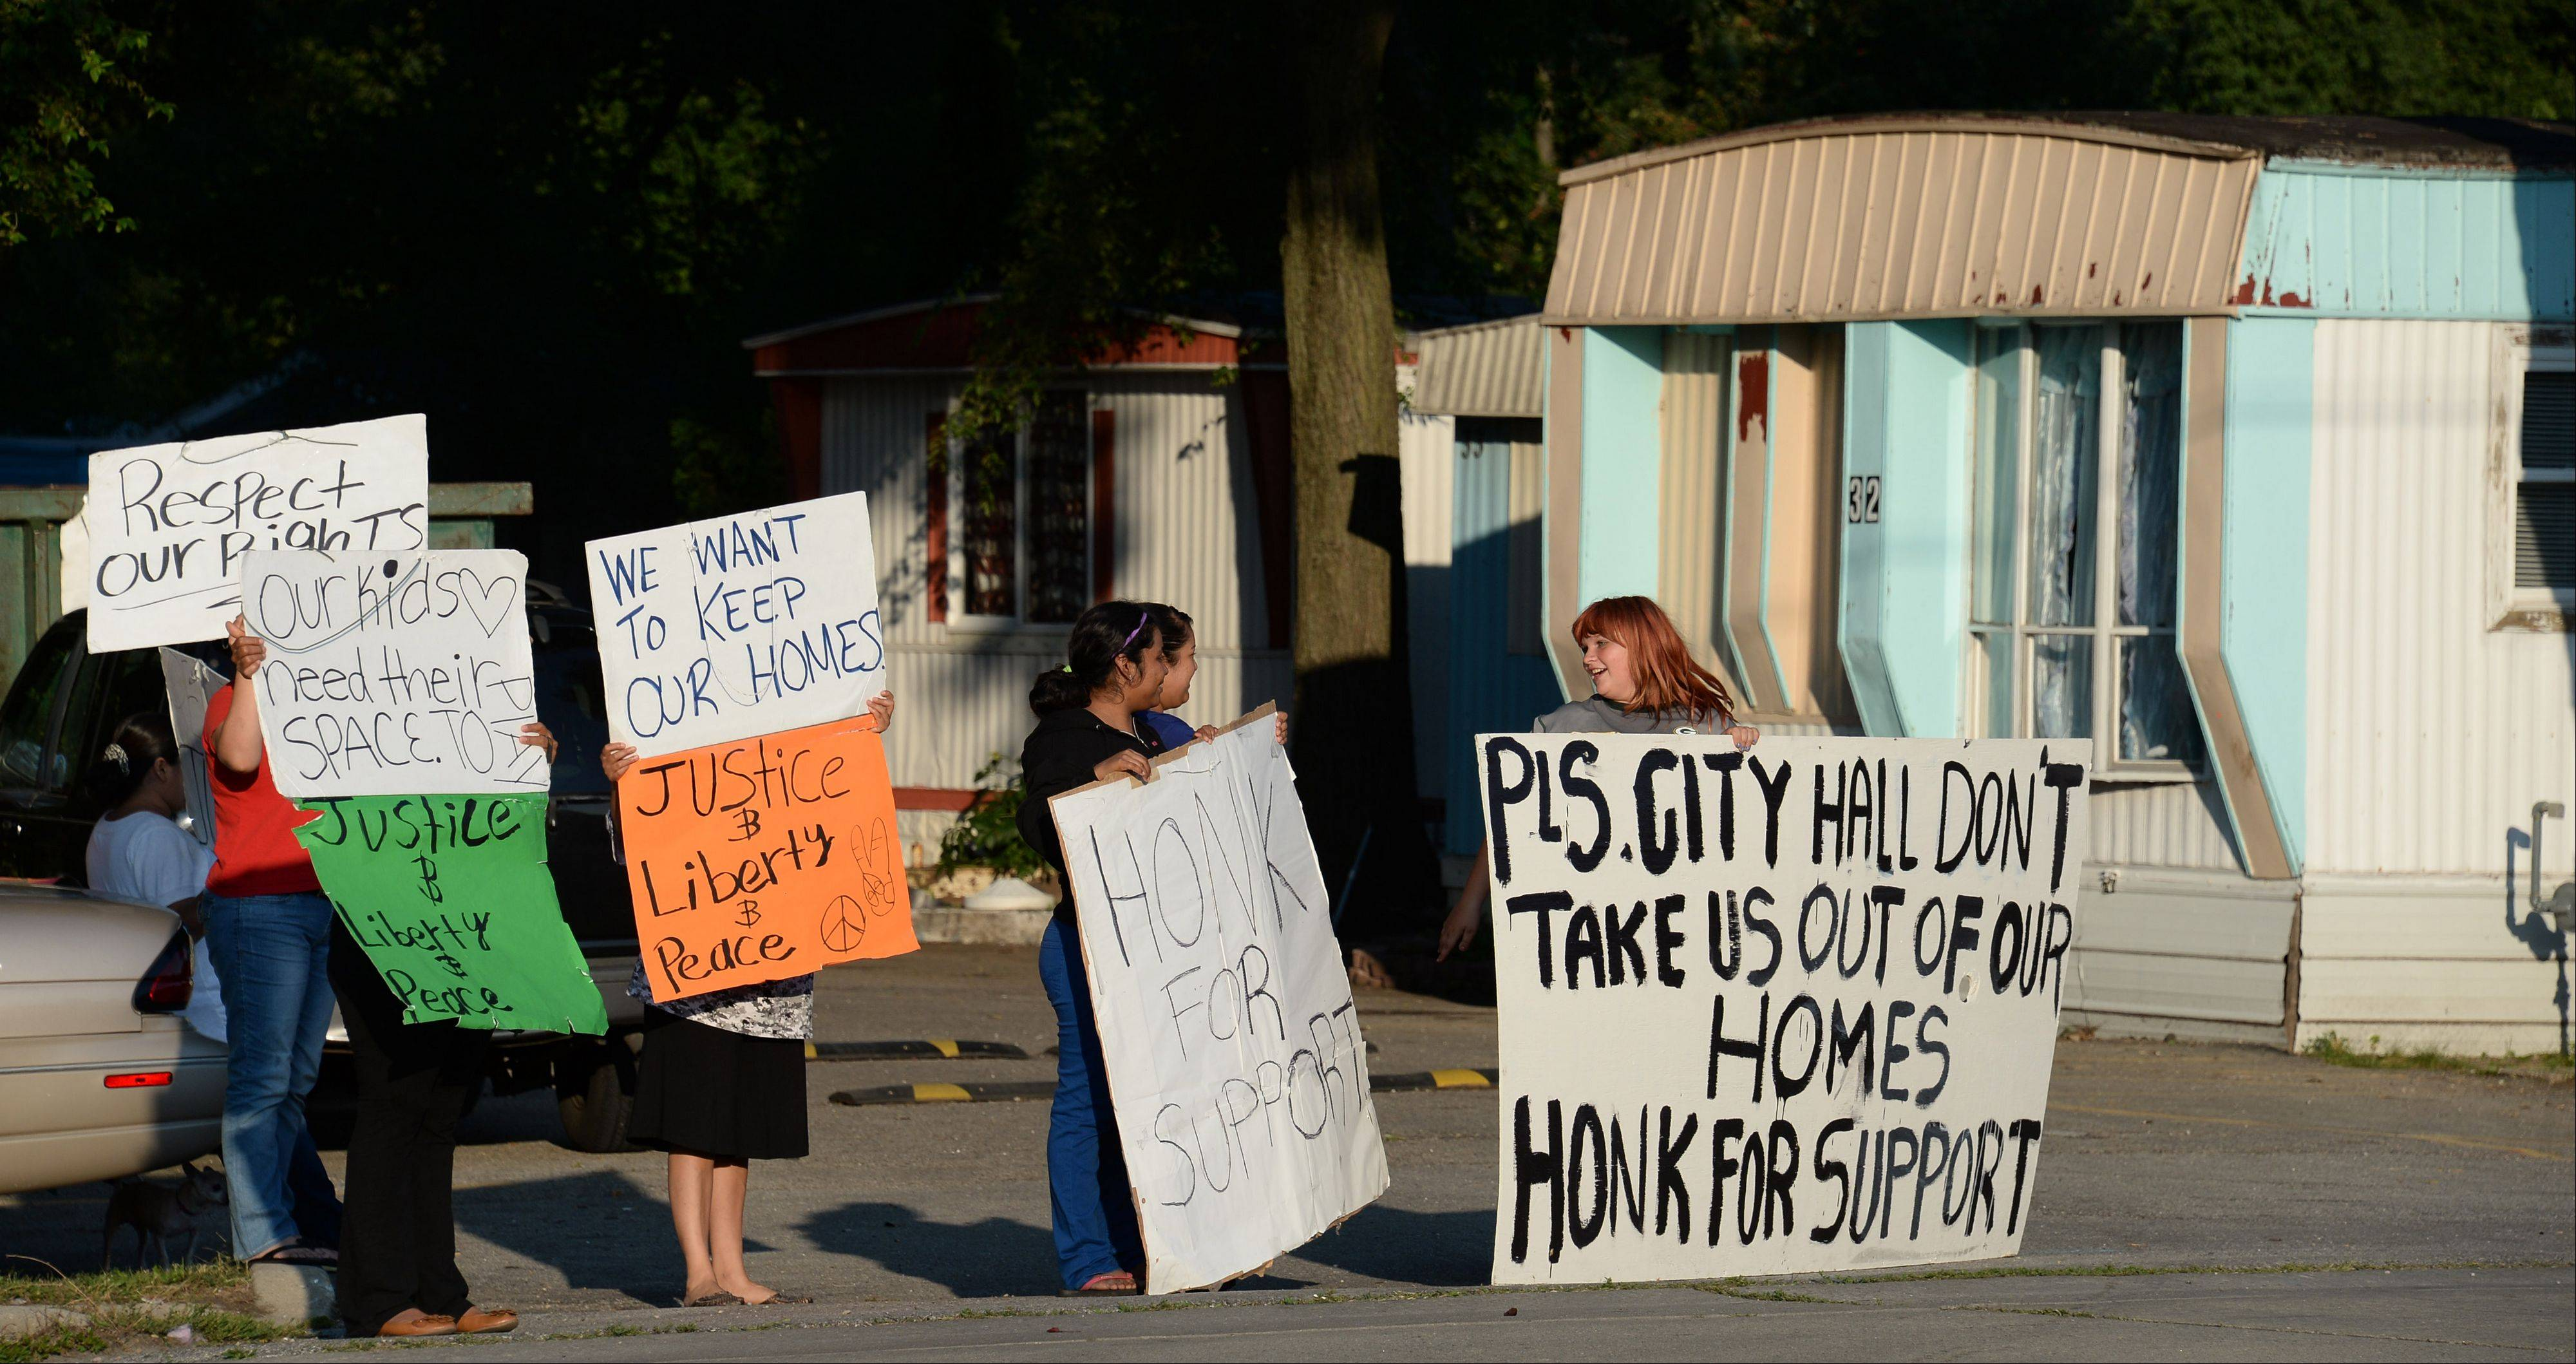 Residents of the Fox Point mobile home community in Wheeling have staged several protests against the village�s demands for extensive repairs to homes damaged in April�s floods. Residents say the village is targeting them unfairly because the community is predominantly Hispanic.